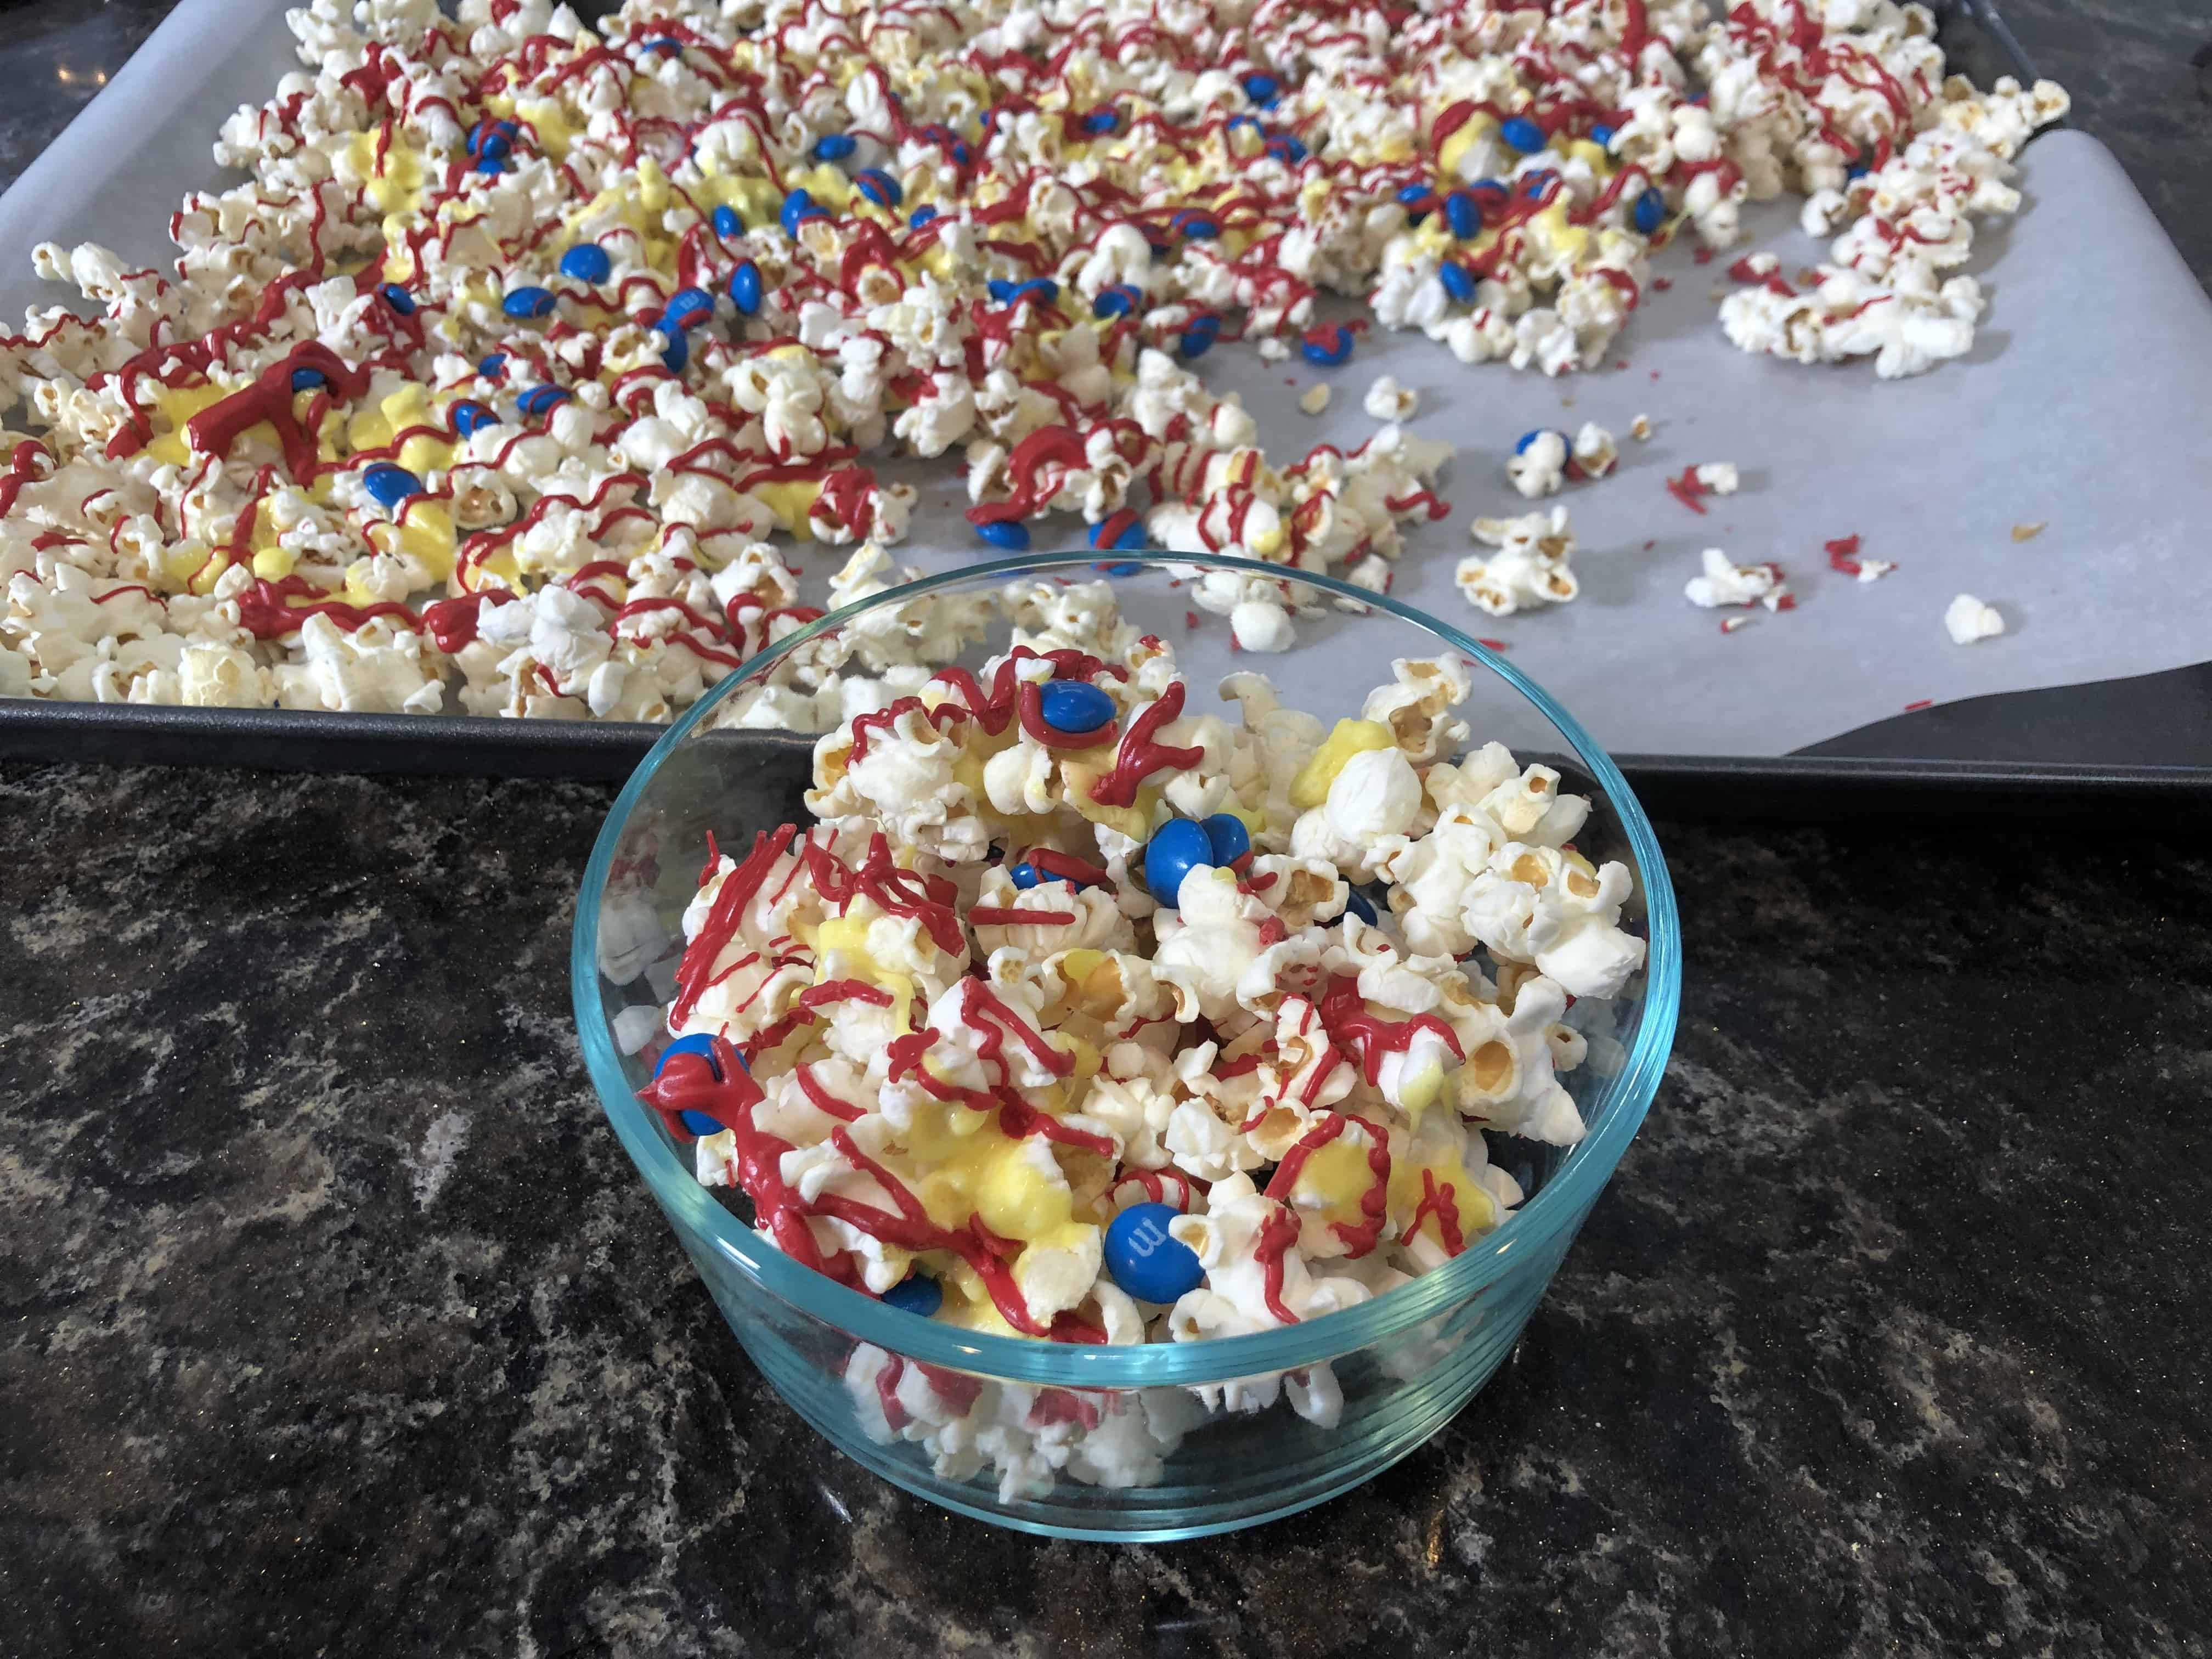 Looking for a fun new superhero popcorn recipe for movie night? Check out this sweet Captain Marvel themed popcorn with red, blue and yellow -- the colors of the movie! #captainmarvel #disneyrecipes